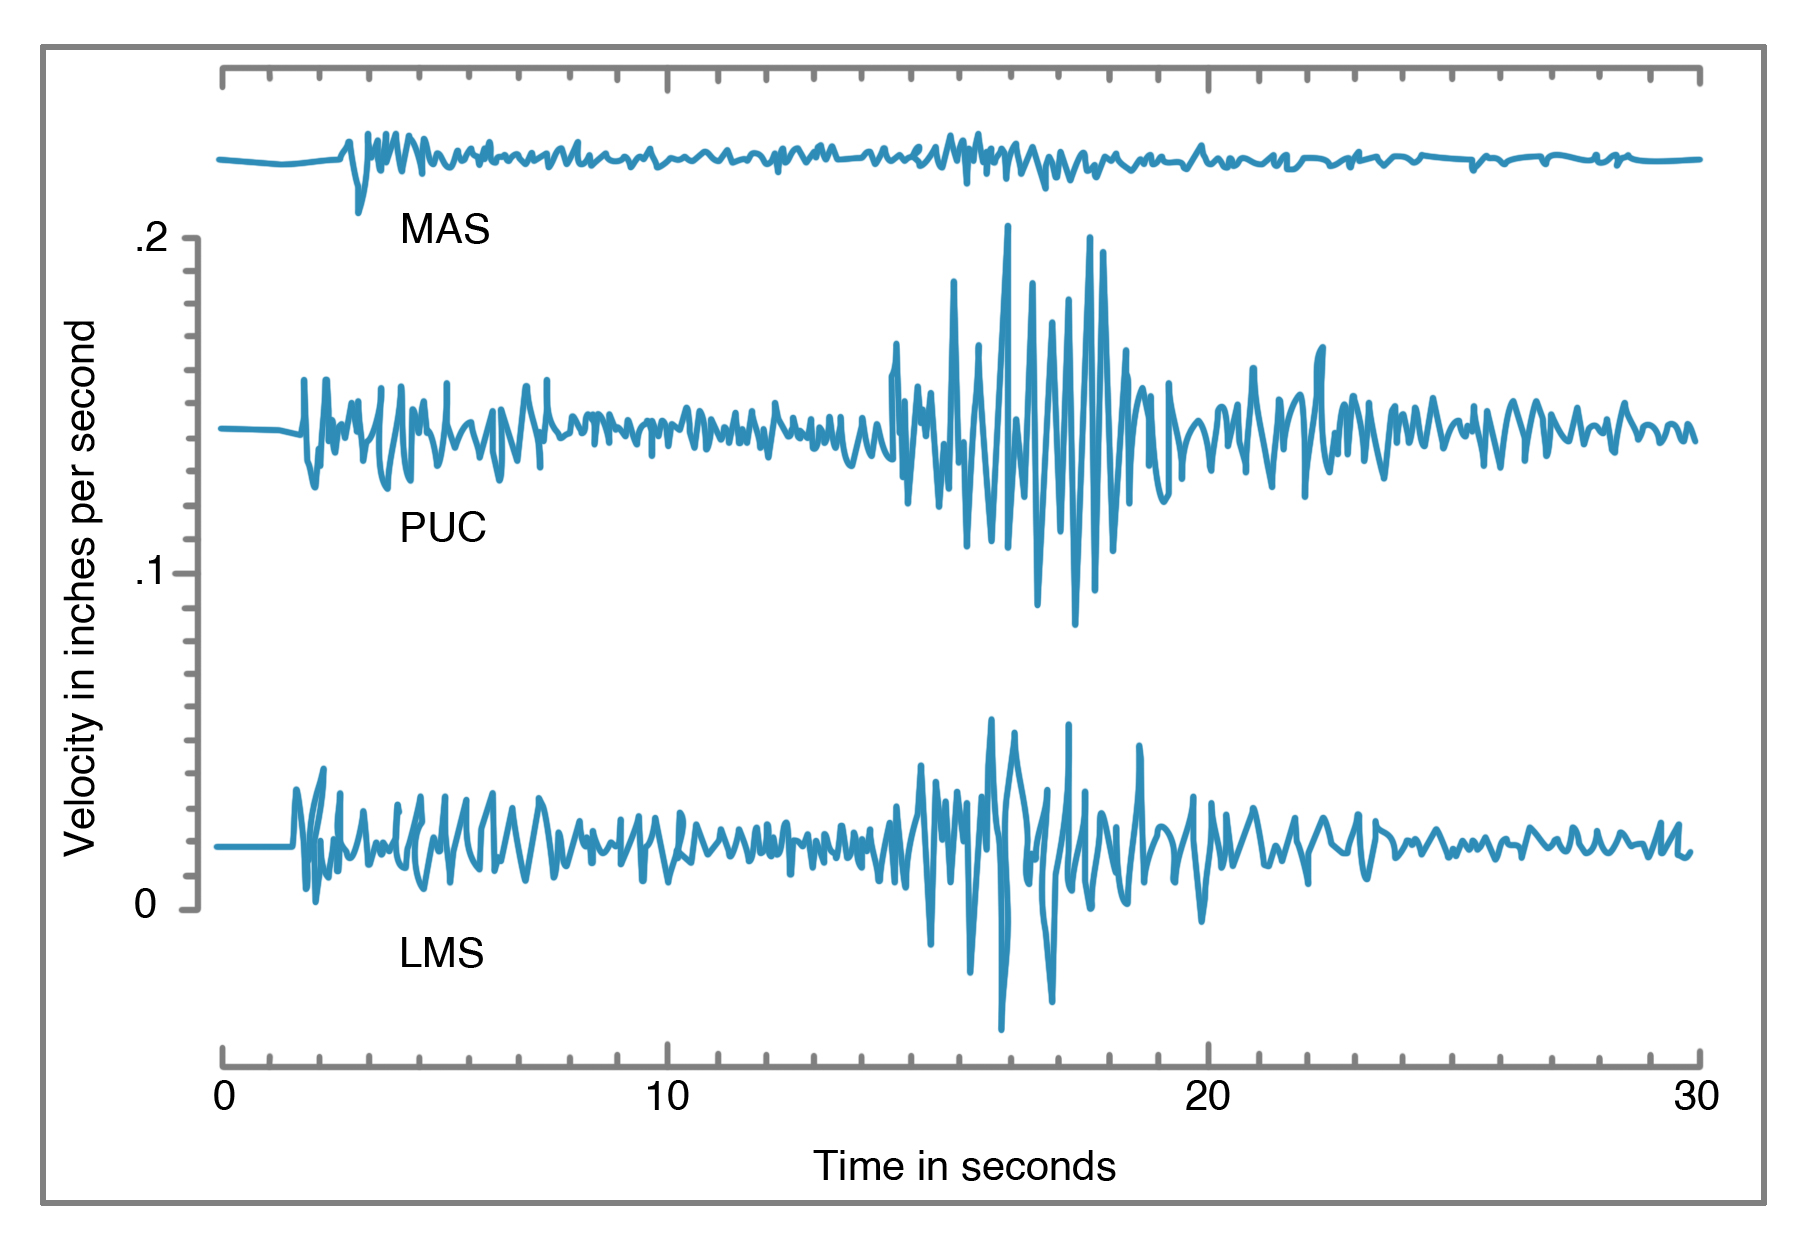 Seismograms of a magnitude 4.6 aftershock of the Loma Prieta earthquake on October 21, 1989, at three temporary stations at the north end of San Francisco Peninsula, showing amplification of ground motion in two soil sites in the Marina district (PUC, LMS) compared to a bedrock site at Fort Mason (MAS).